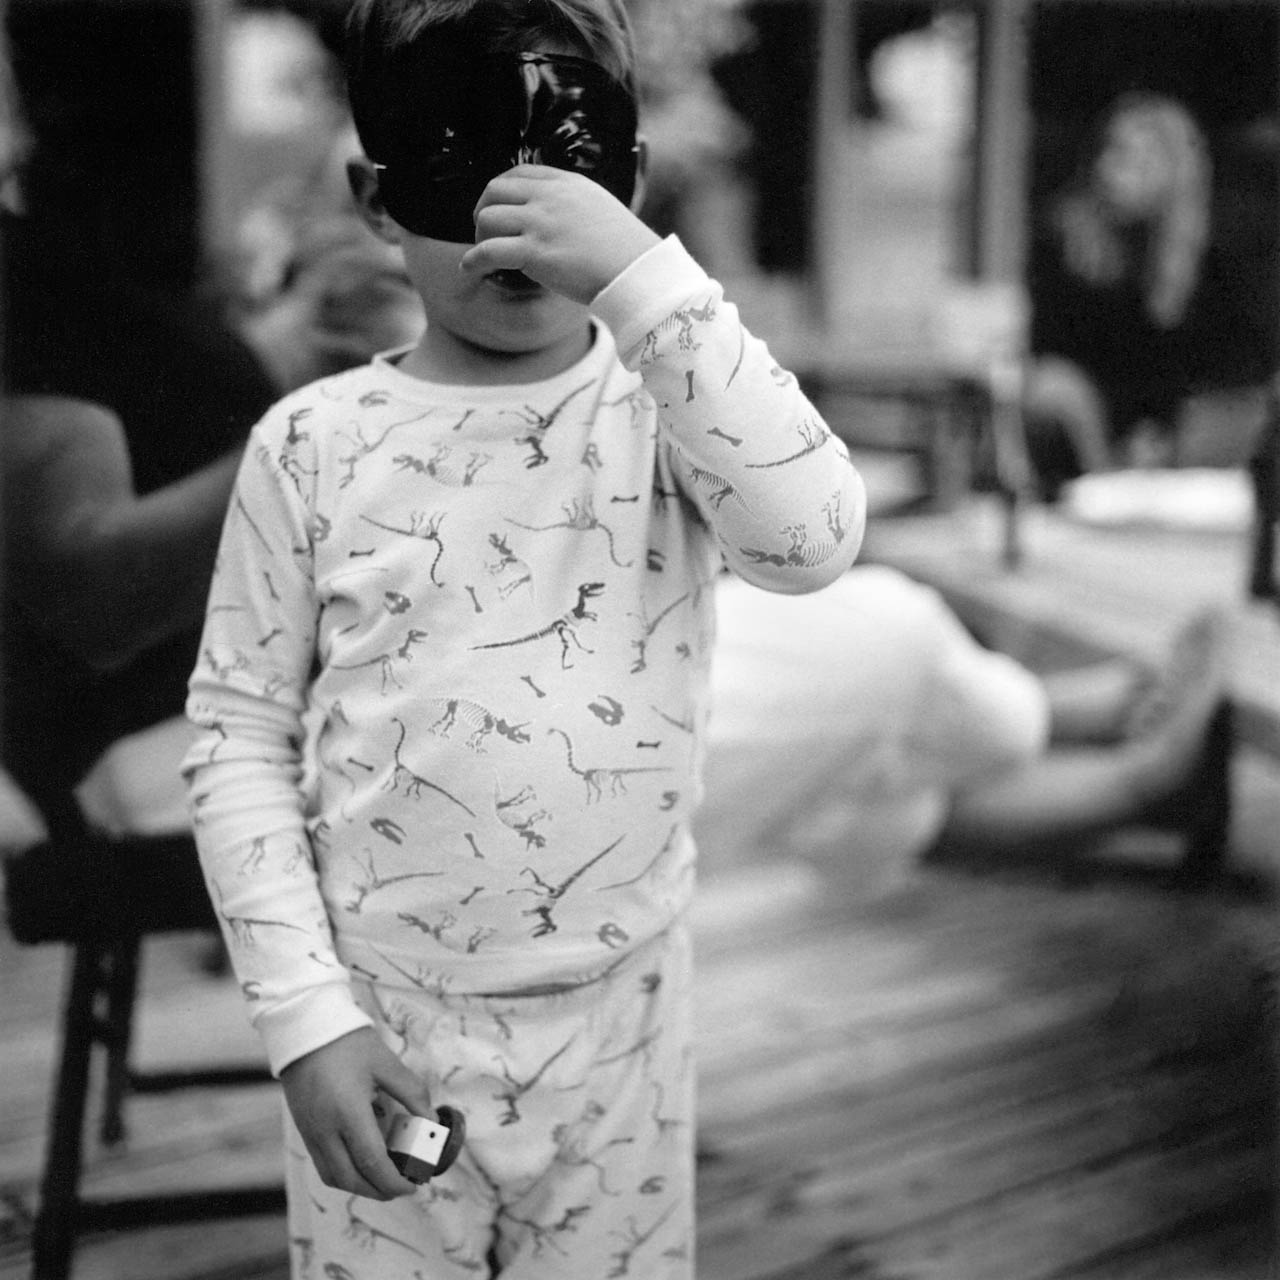 boy with mask.jpg